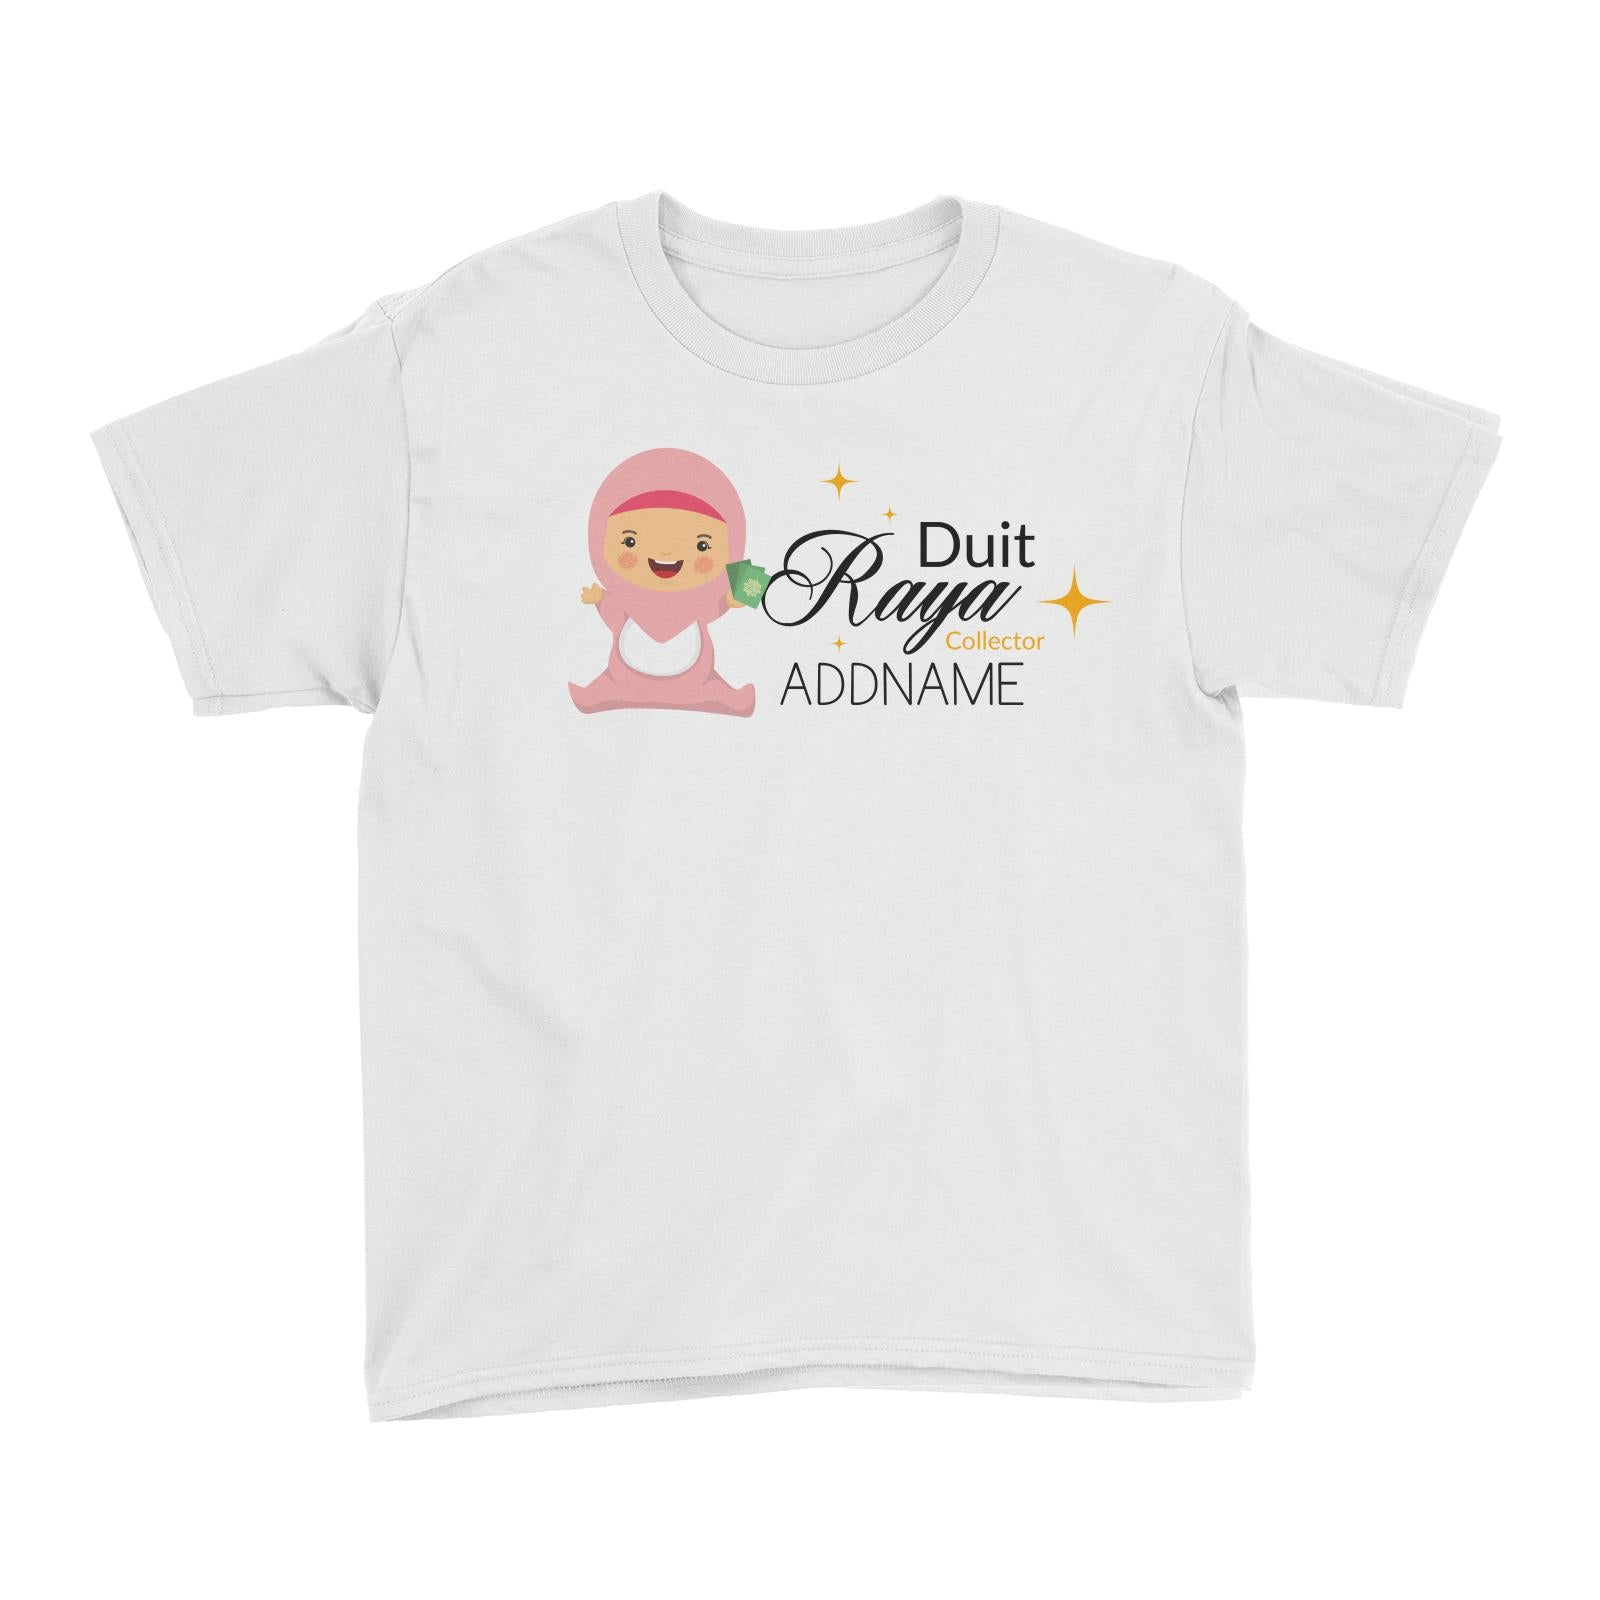 Duit Raya Collector Baby Girl Kid's T-Shirt  Personalizable Designs Sweet Character